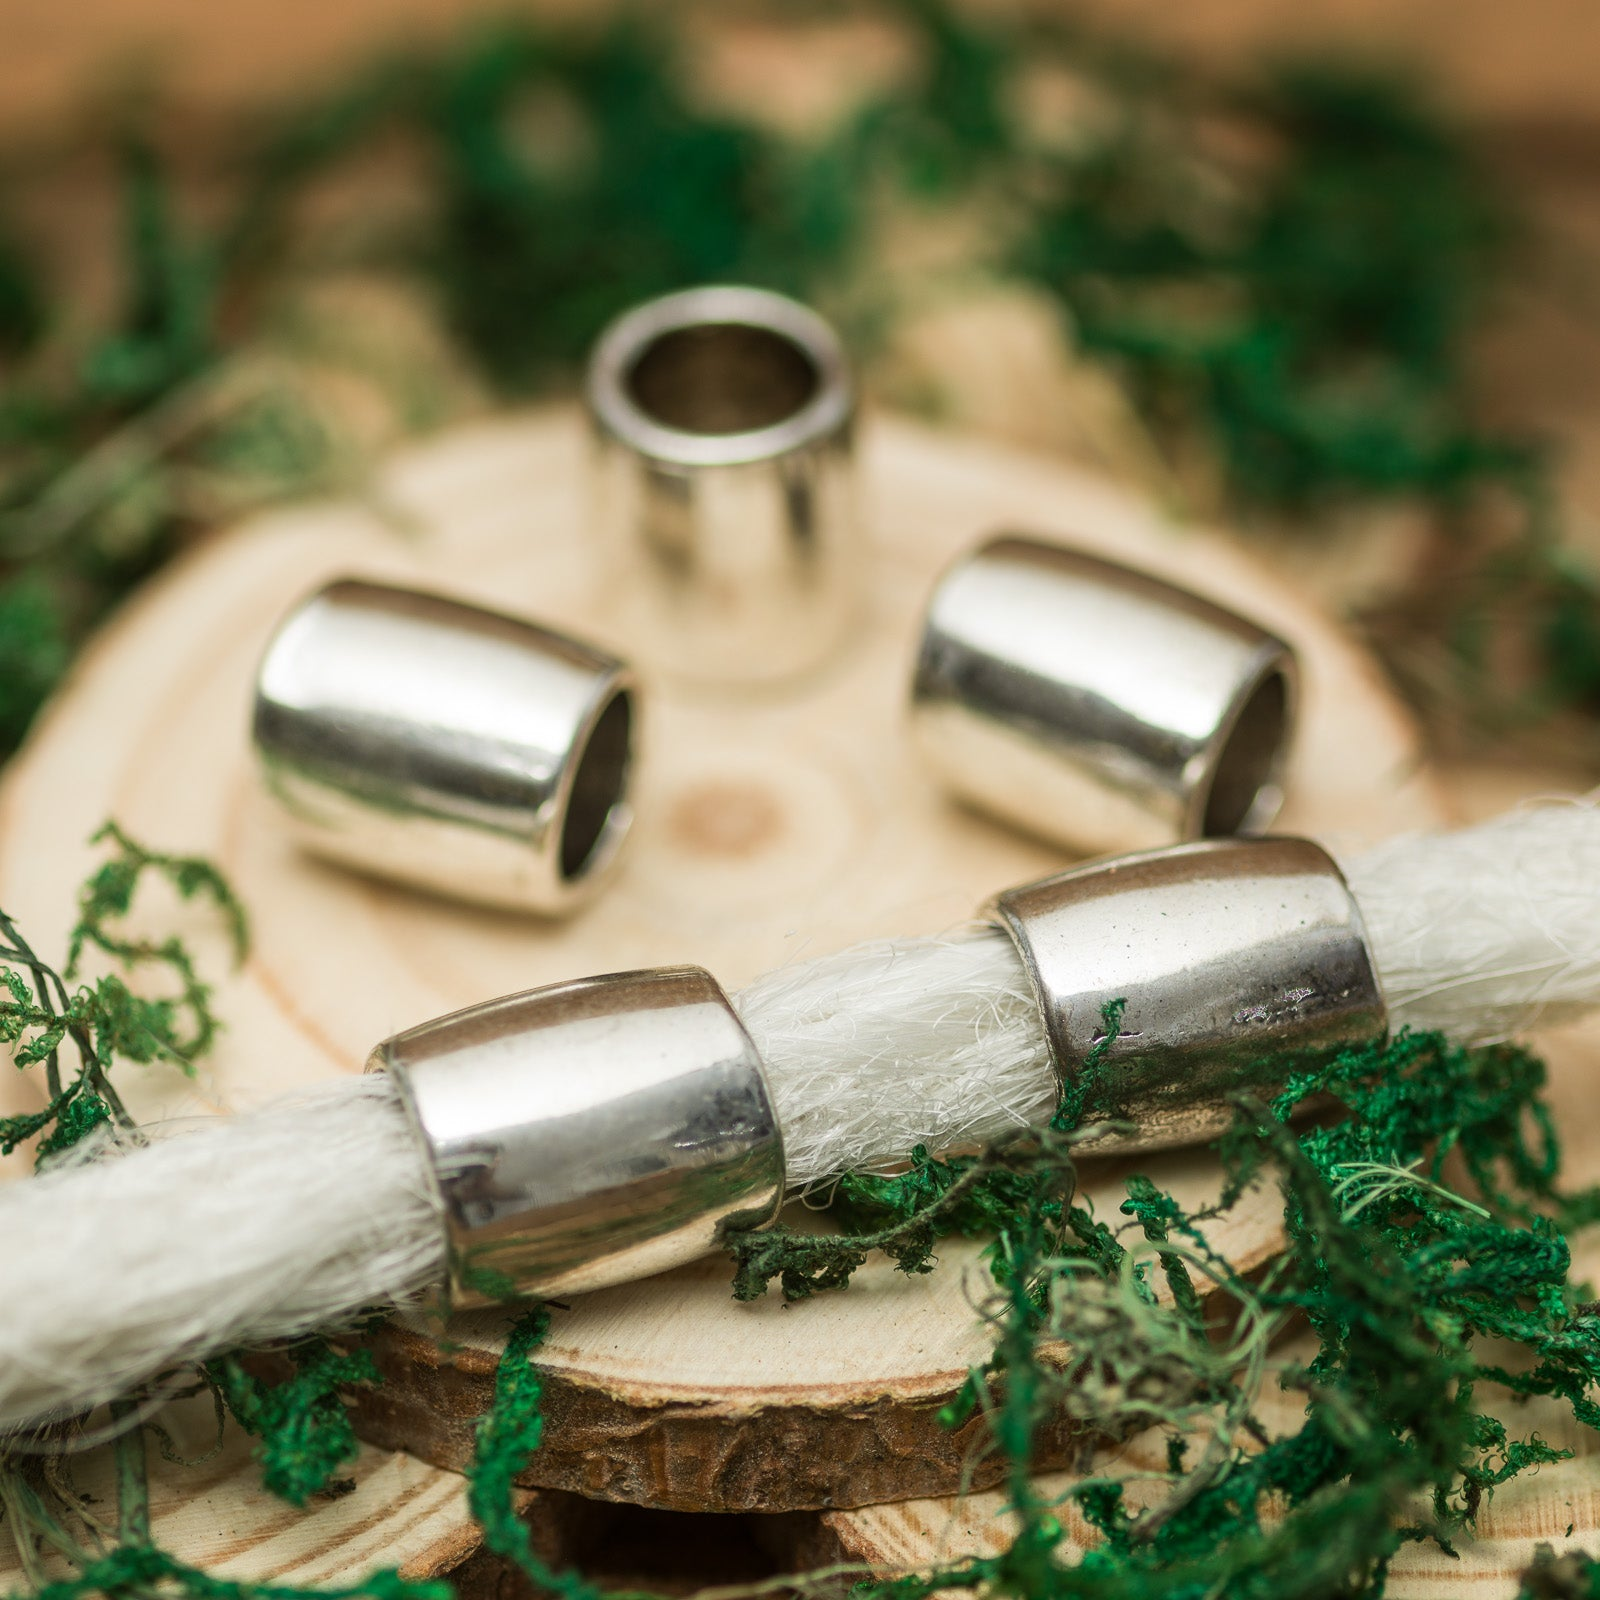 DreadLab - Stainless Steel Smooth Barrel Dread Beads Silver Colour